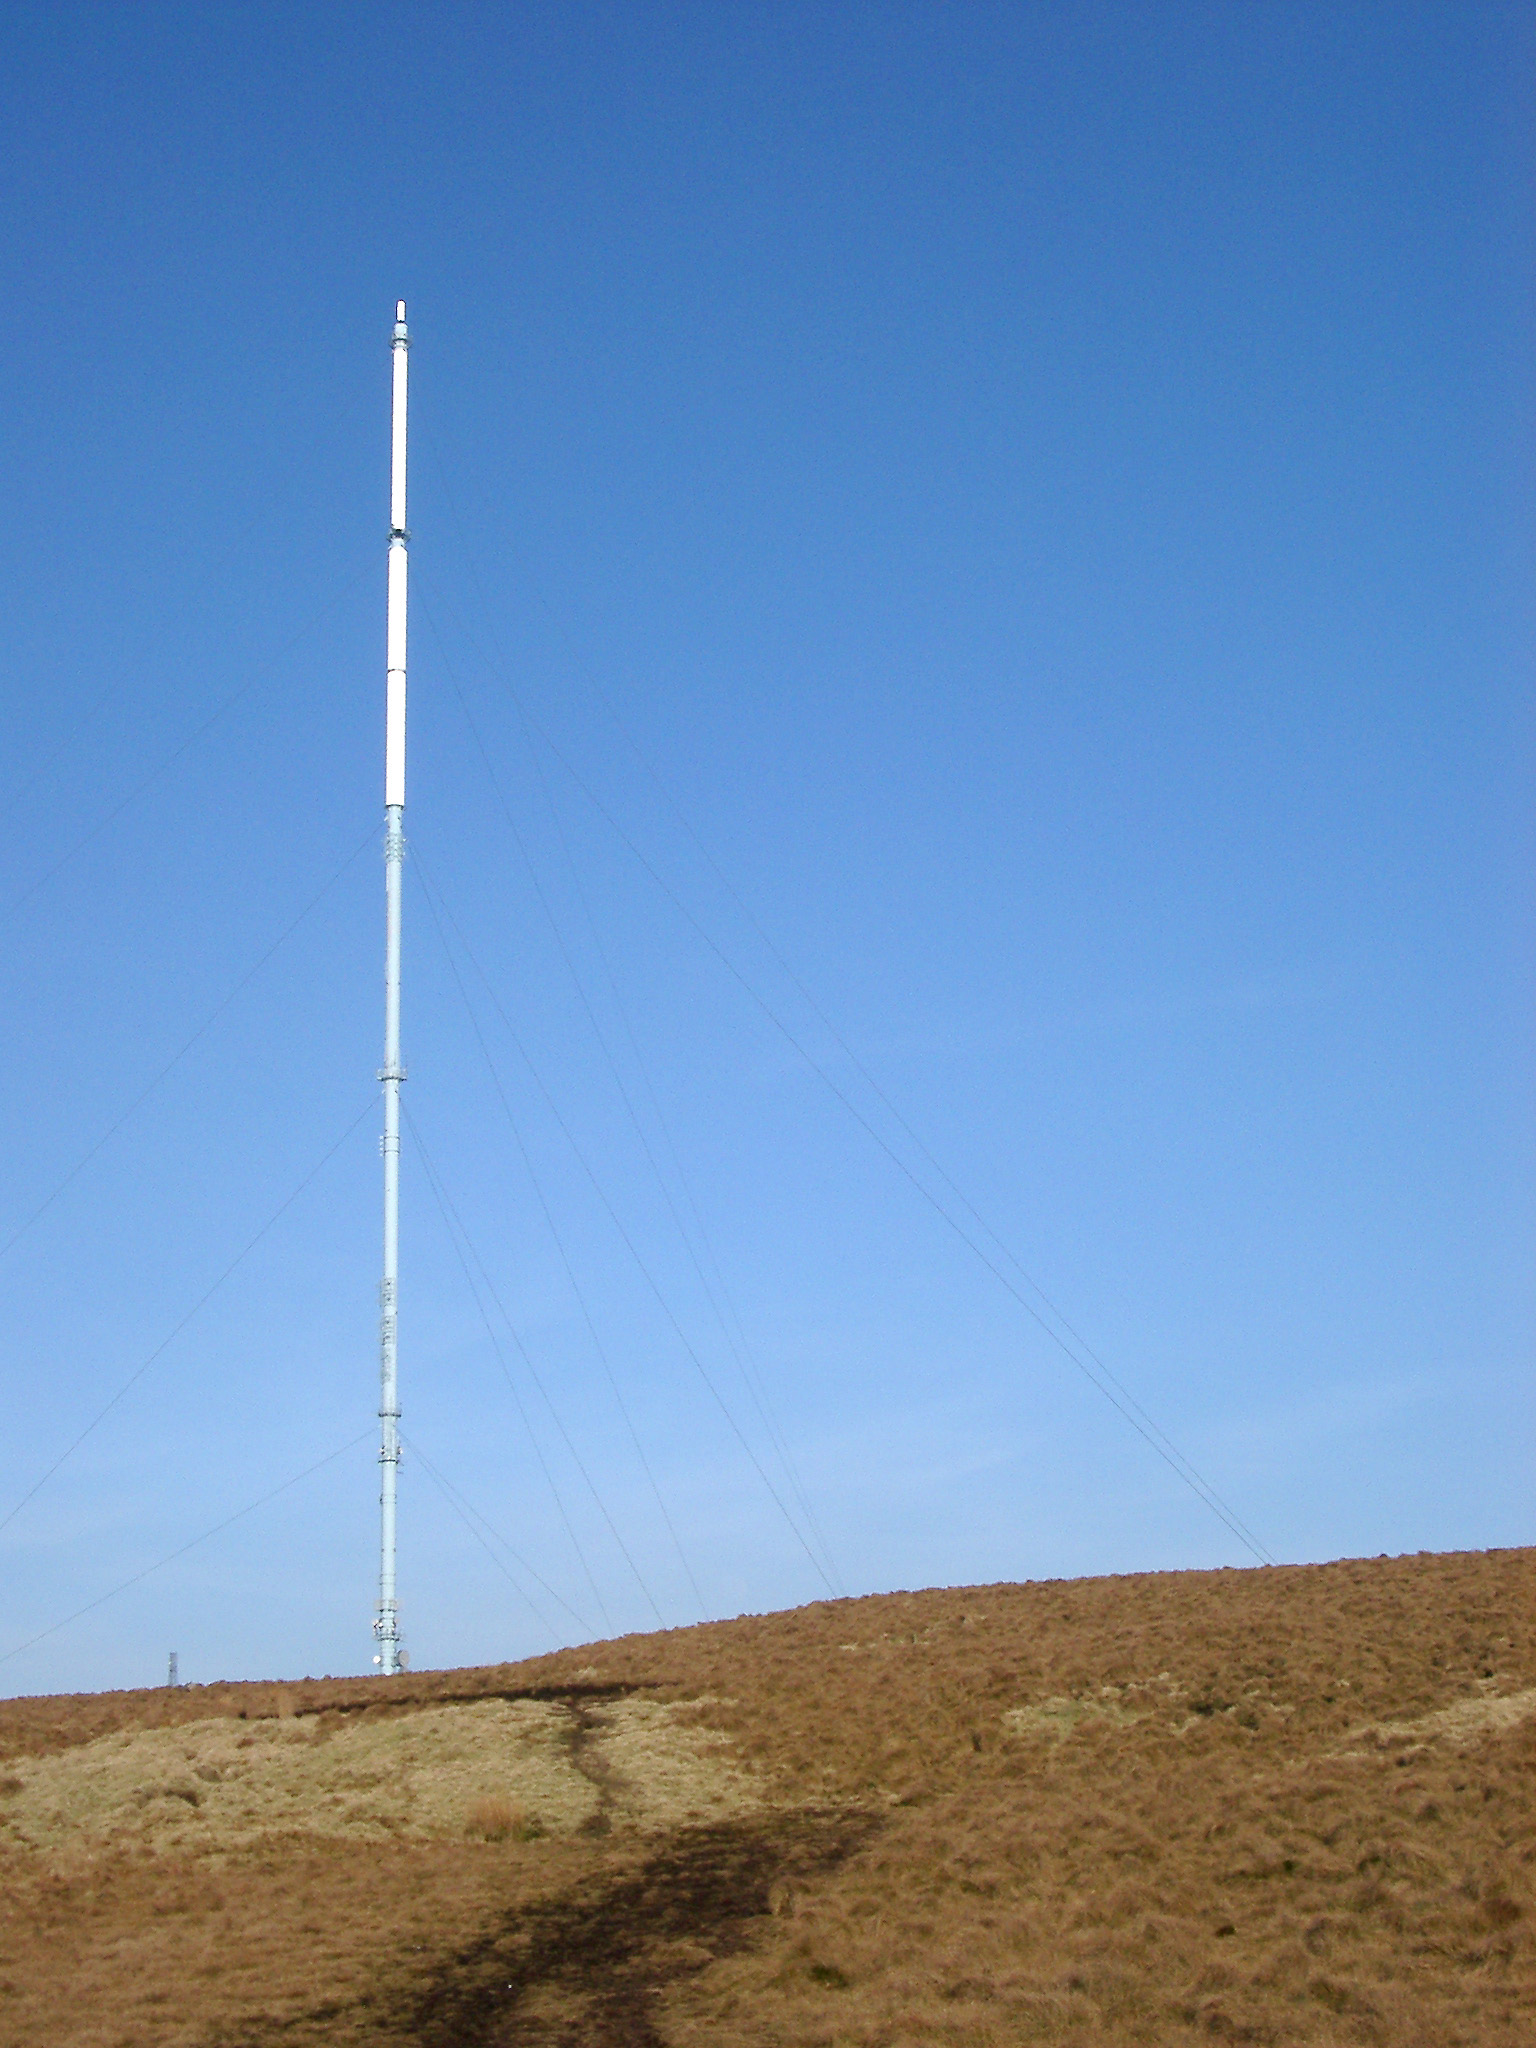 Tall communications transmitter on a winter hill top against a clear sunny blue sky